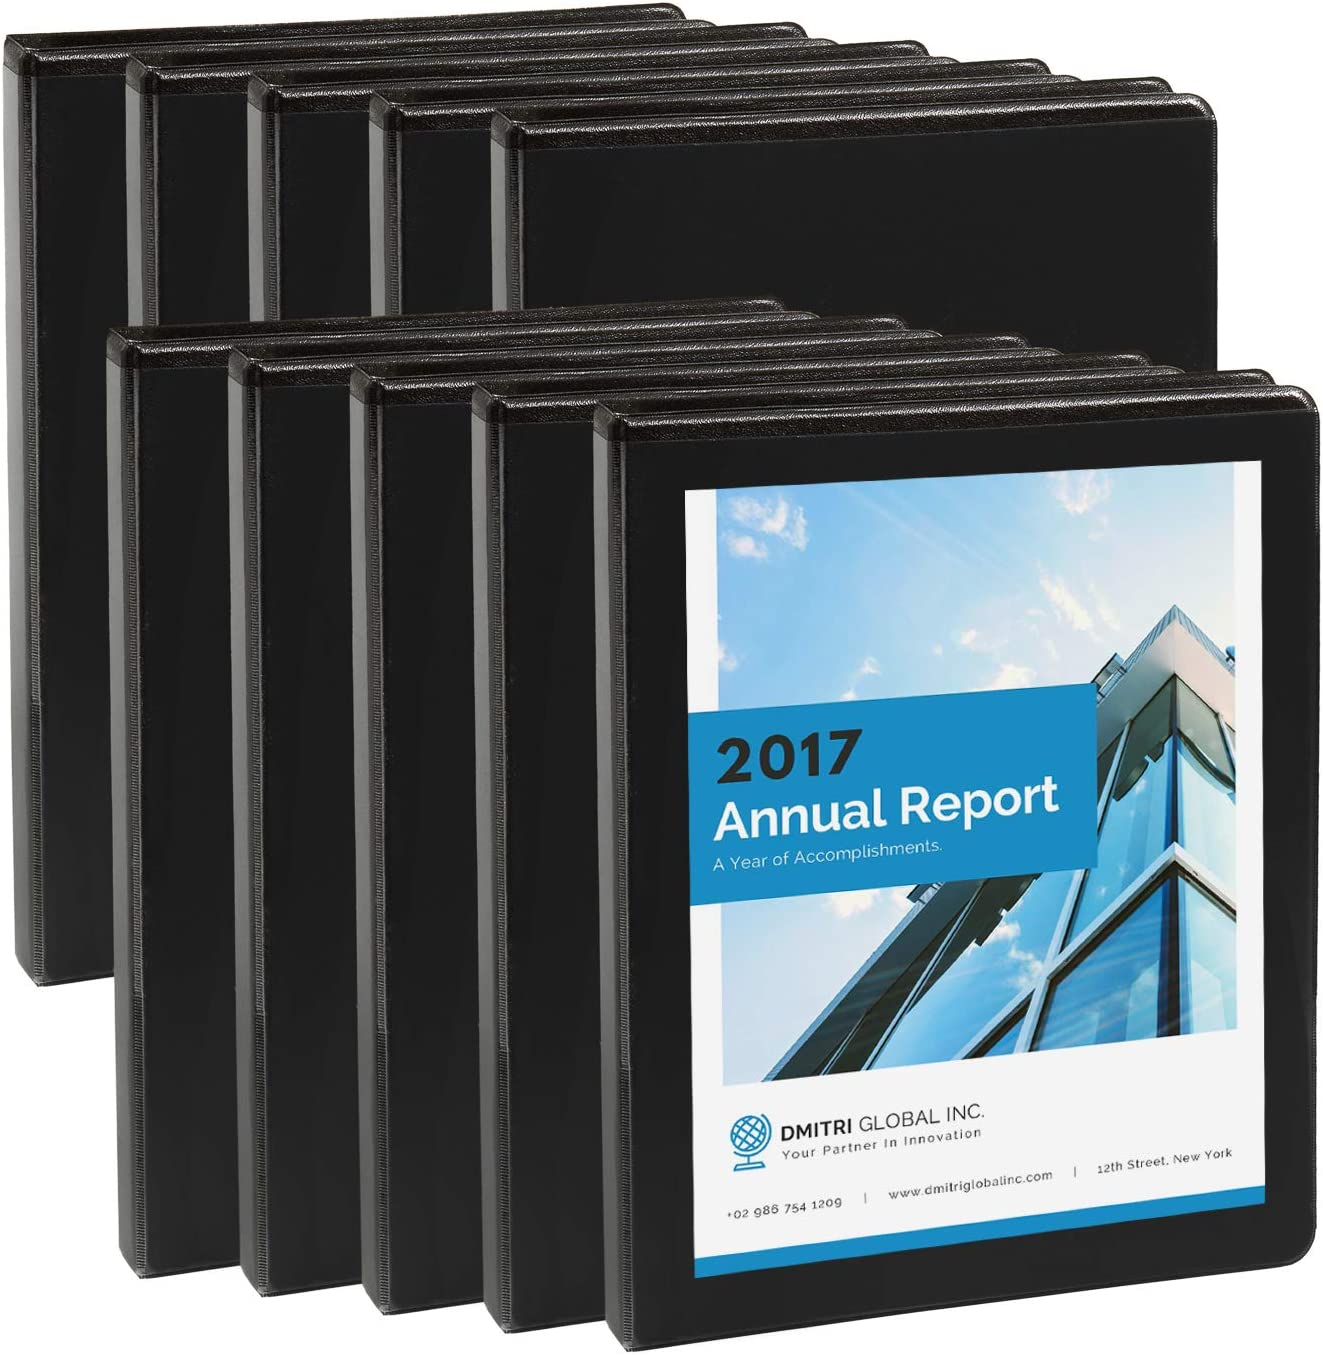 Blue Summit Supplies 10 Pack of 1/2 Inch 3 Ring Economy Binders, Black, Bulk Clear Cover Binders for Home, Office, and School, 8 1/2 Inch x 11 Inch Paper, Value Pack